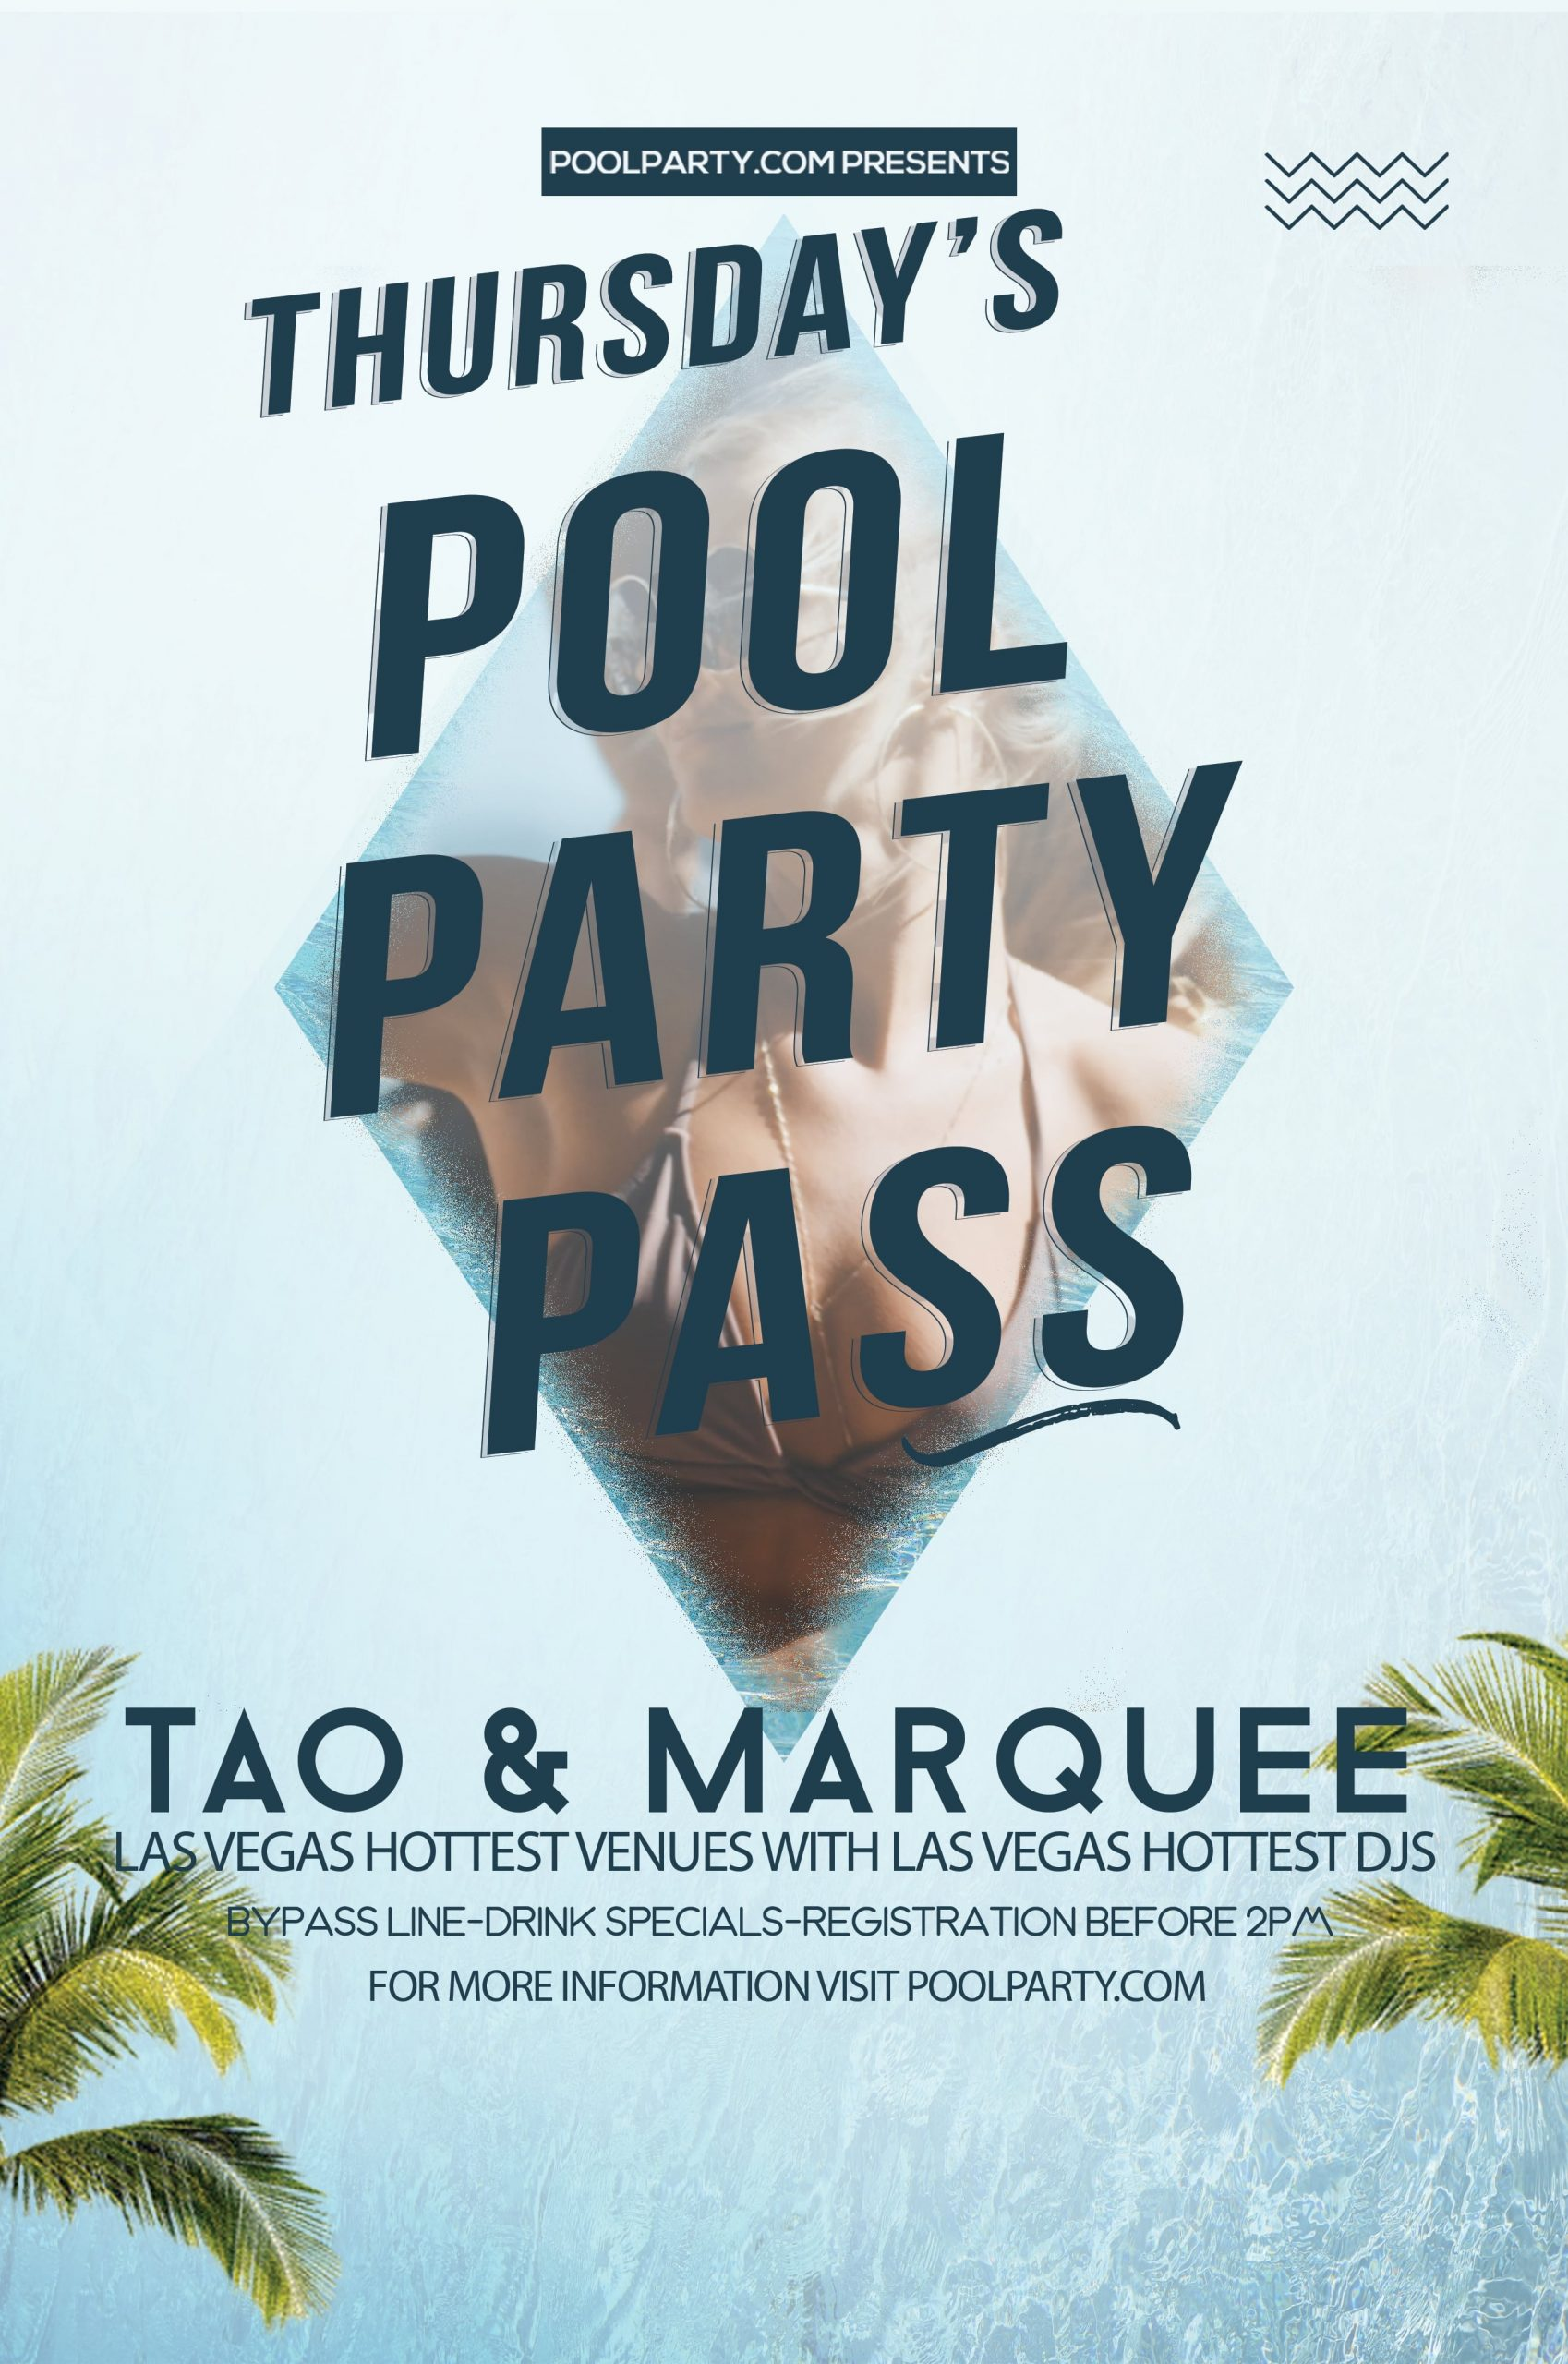 Thursday's Pool Party Pass (July 25th)*VIP Pass, MARQUEE – TAO NIGHTCLUB*